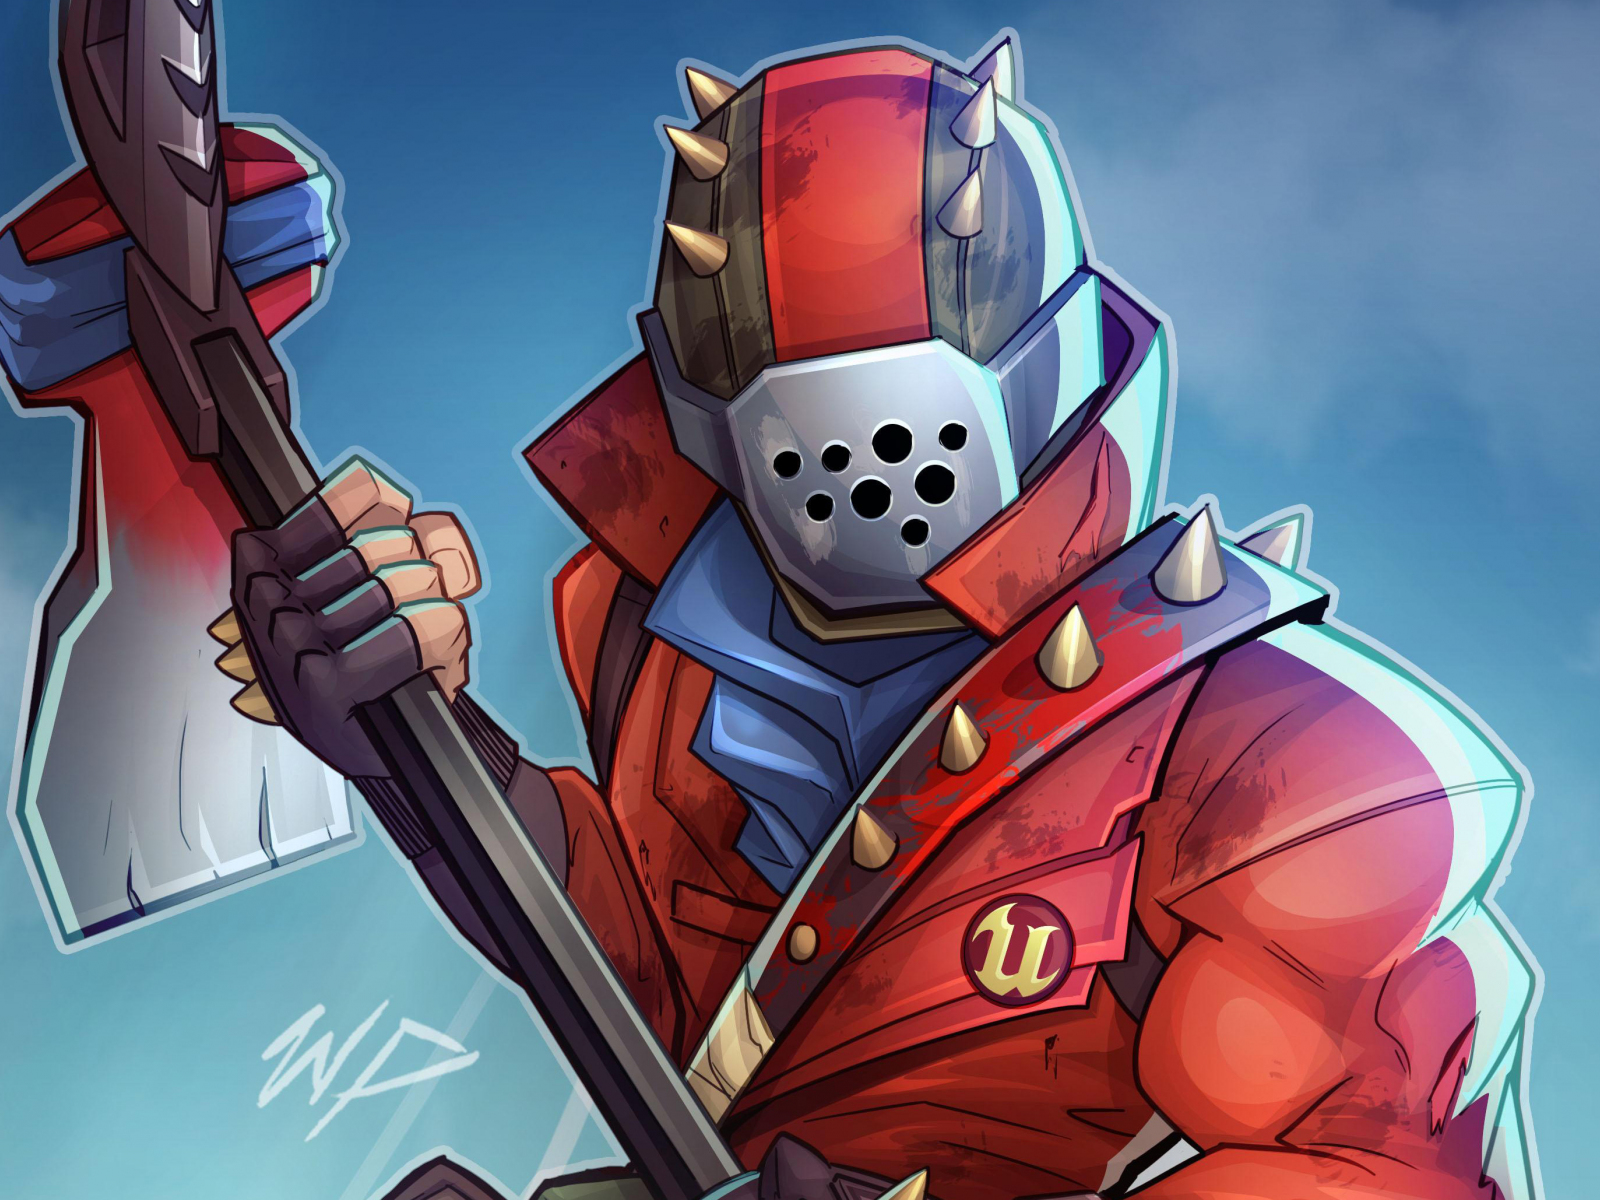 Cute Wallpapers For Mobile Samsung Download 1600x1200 Wallpaper Fortnite Video Game Fan Art